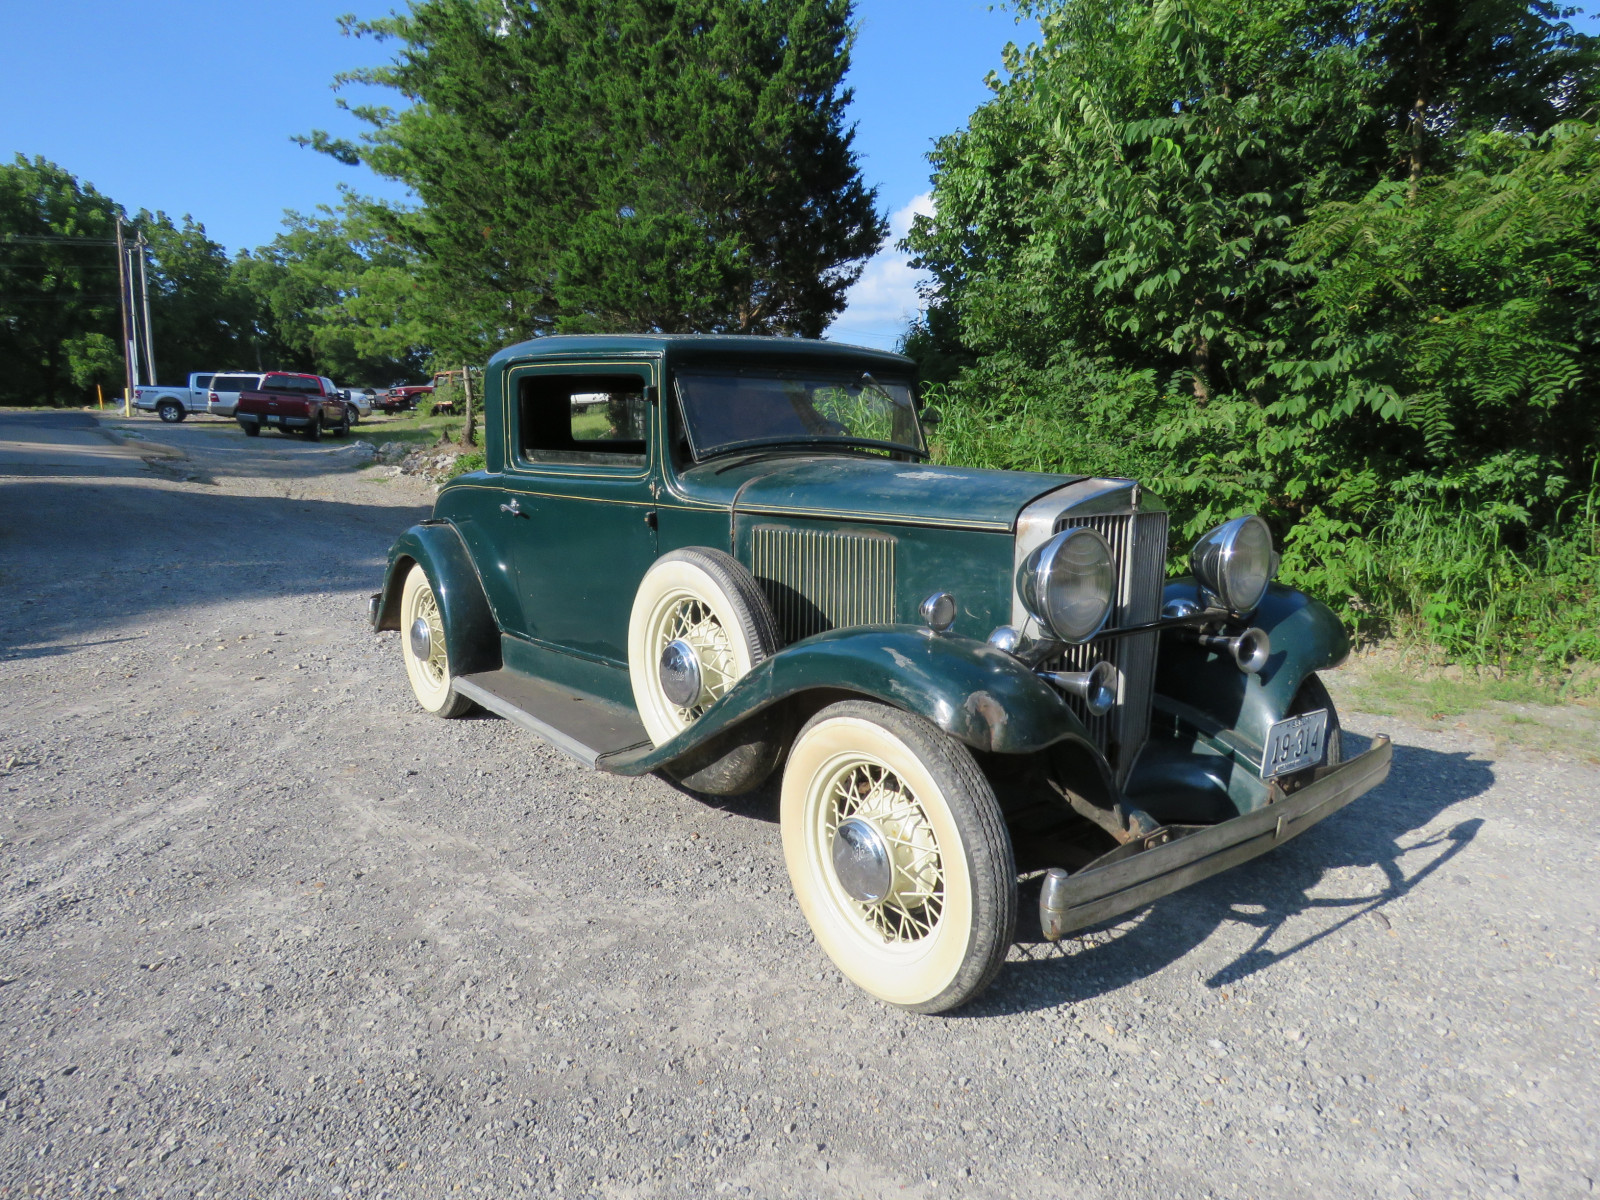 1932 Hupmobile Rumble seat Coupe - Image 16